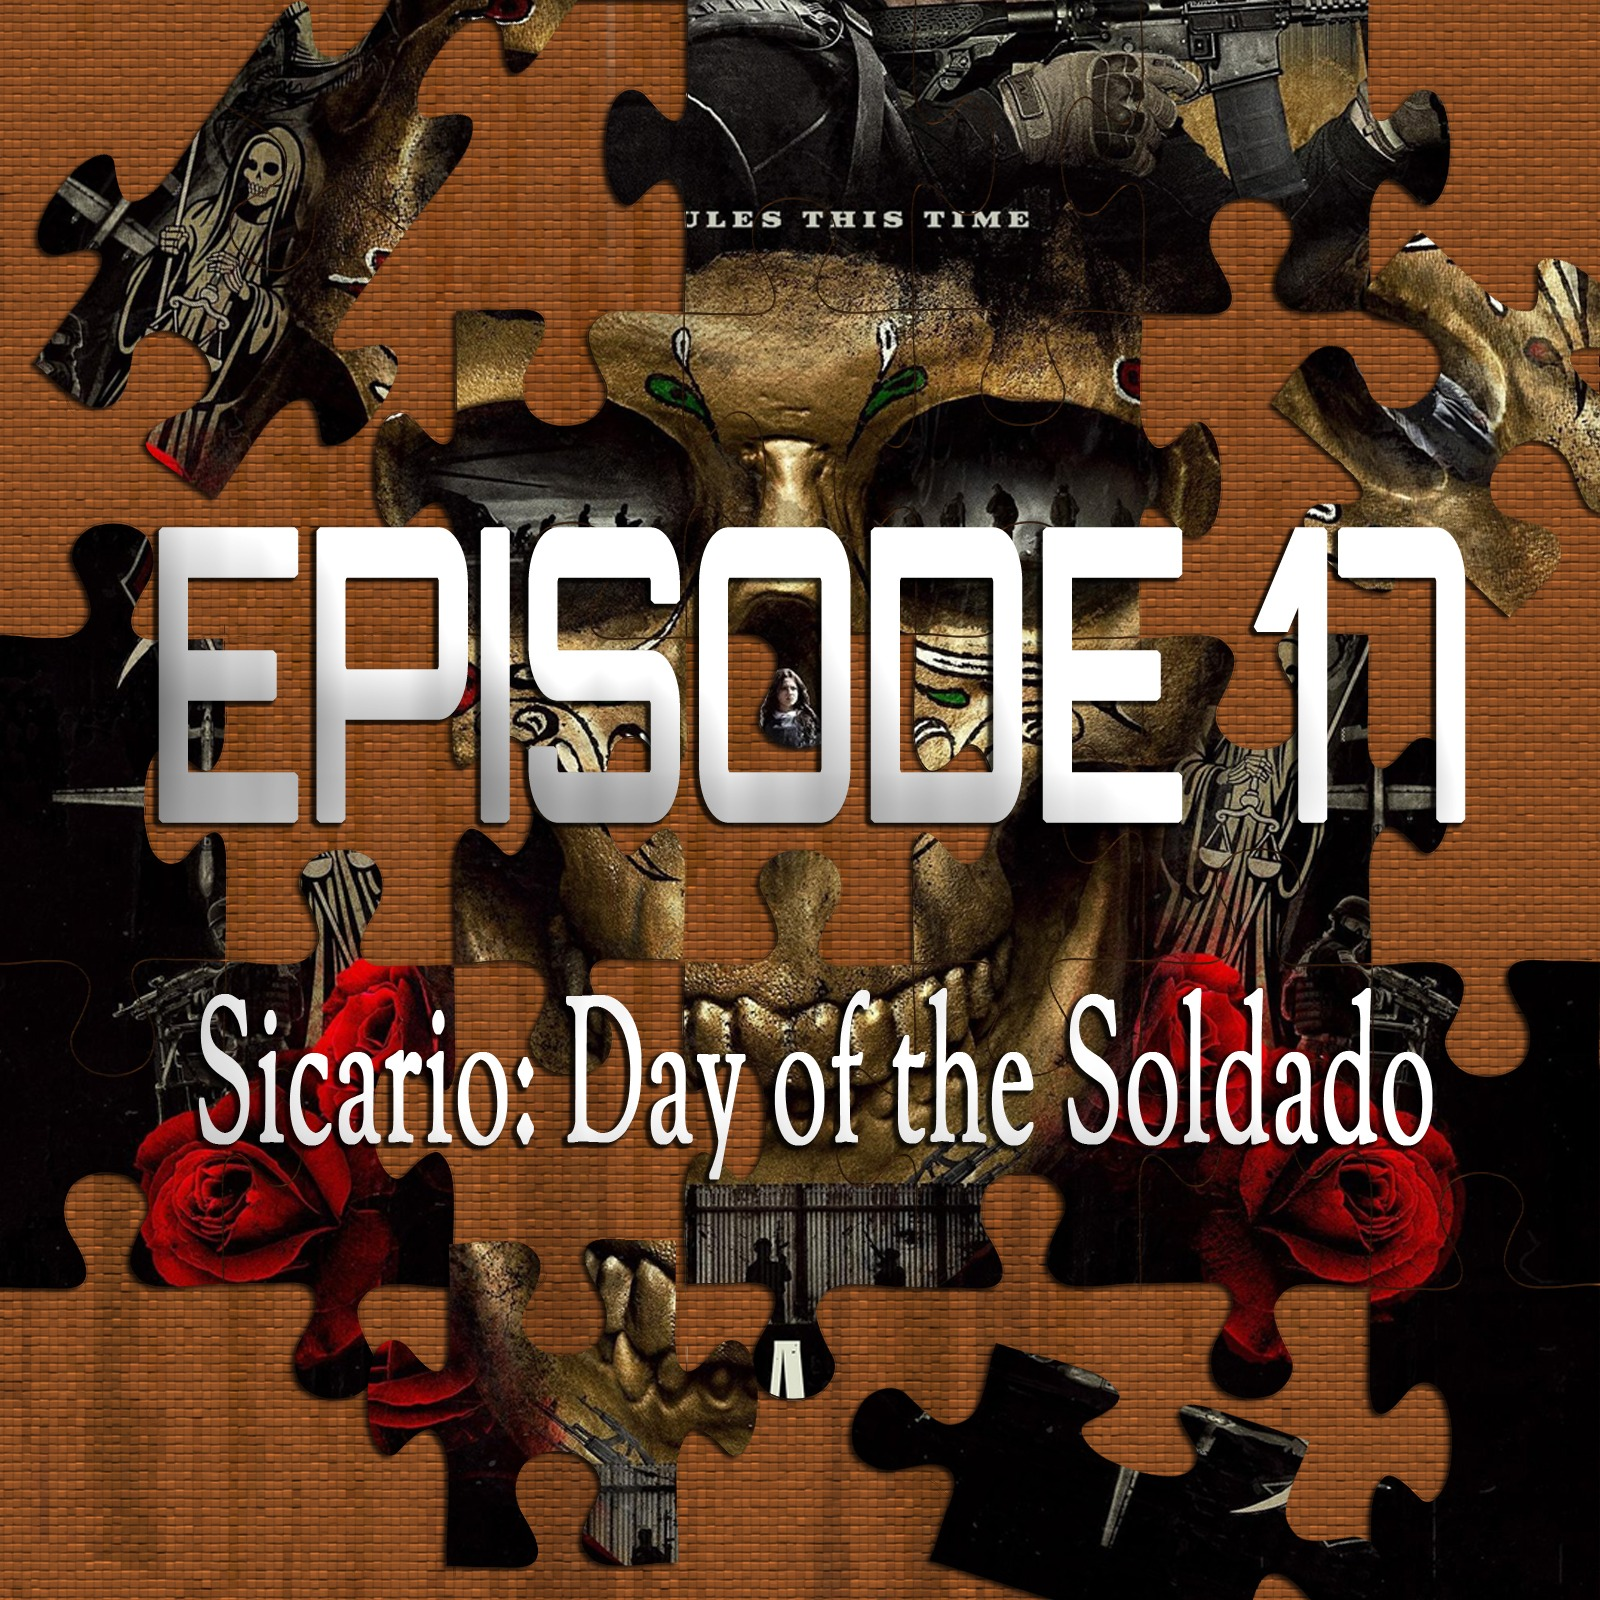 Sicario: Day of the Soldado (Featuring Chad Clinton Freeman)